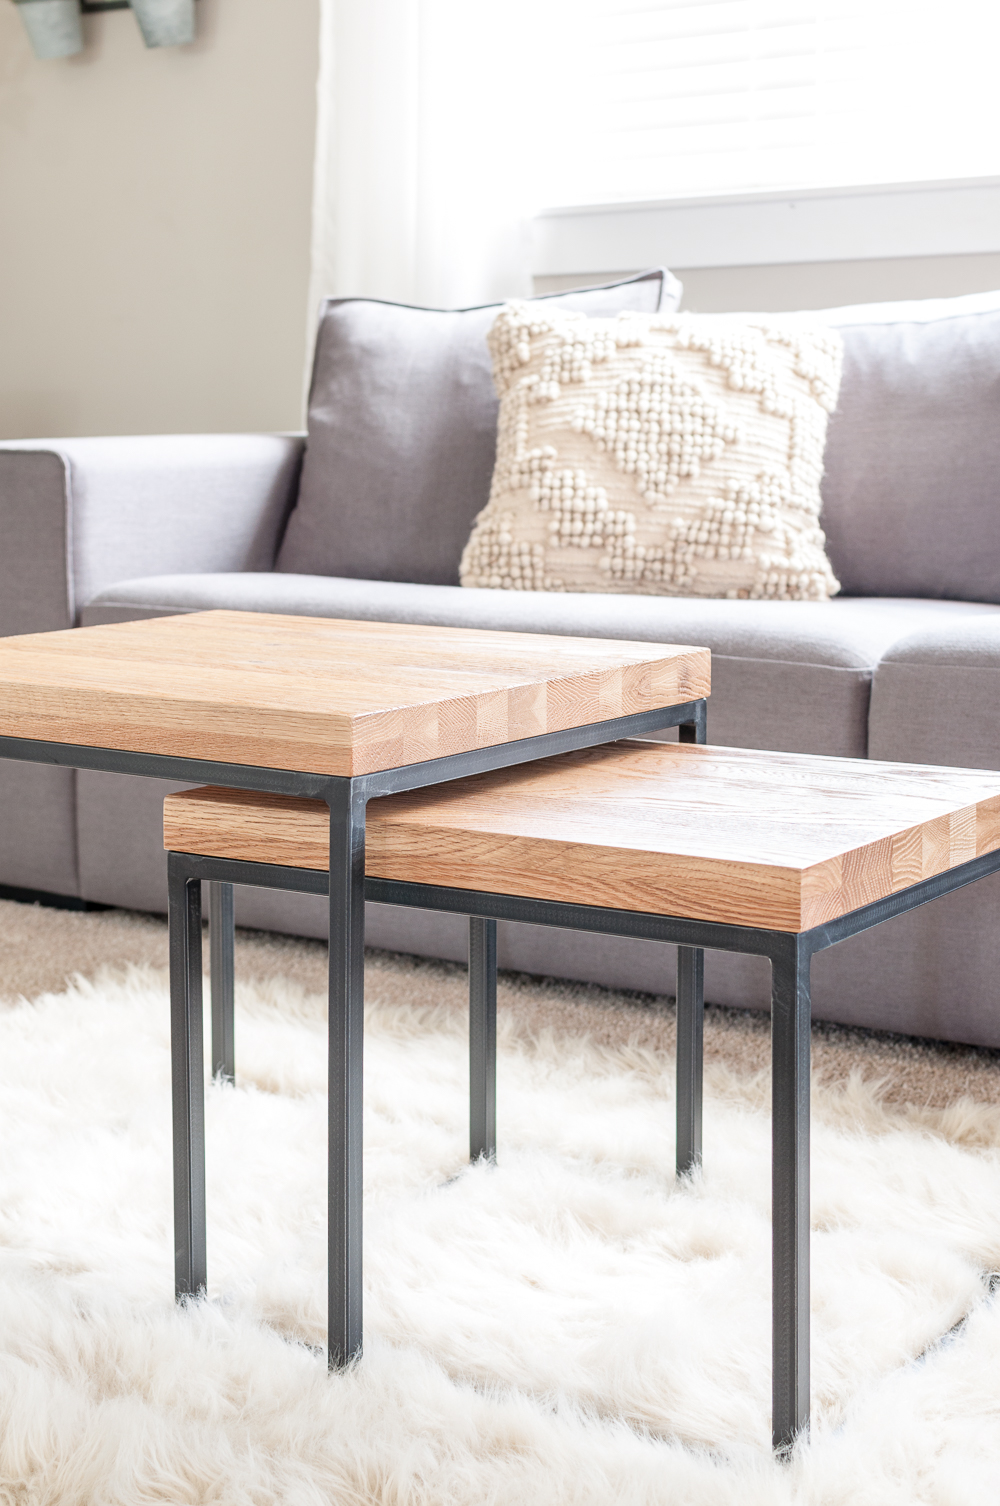 Nesting tables are the perfect addition to a minimalist living room providing surfaces that can also be space saving!